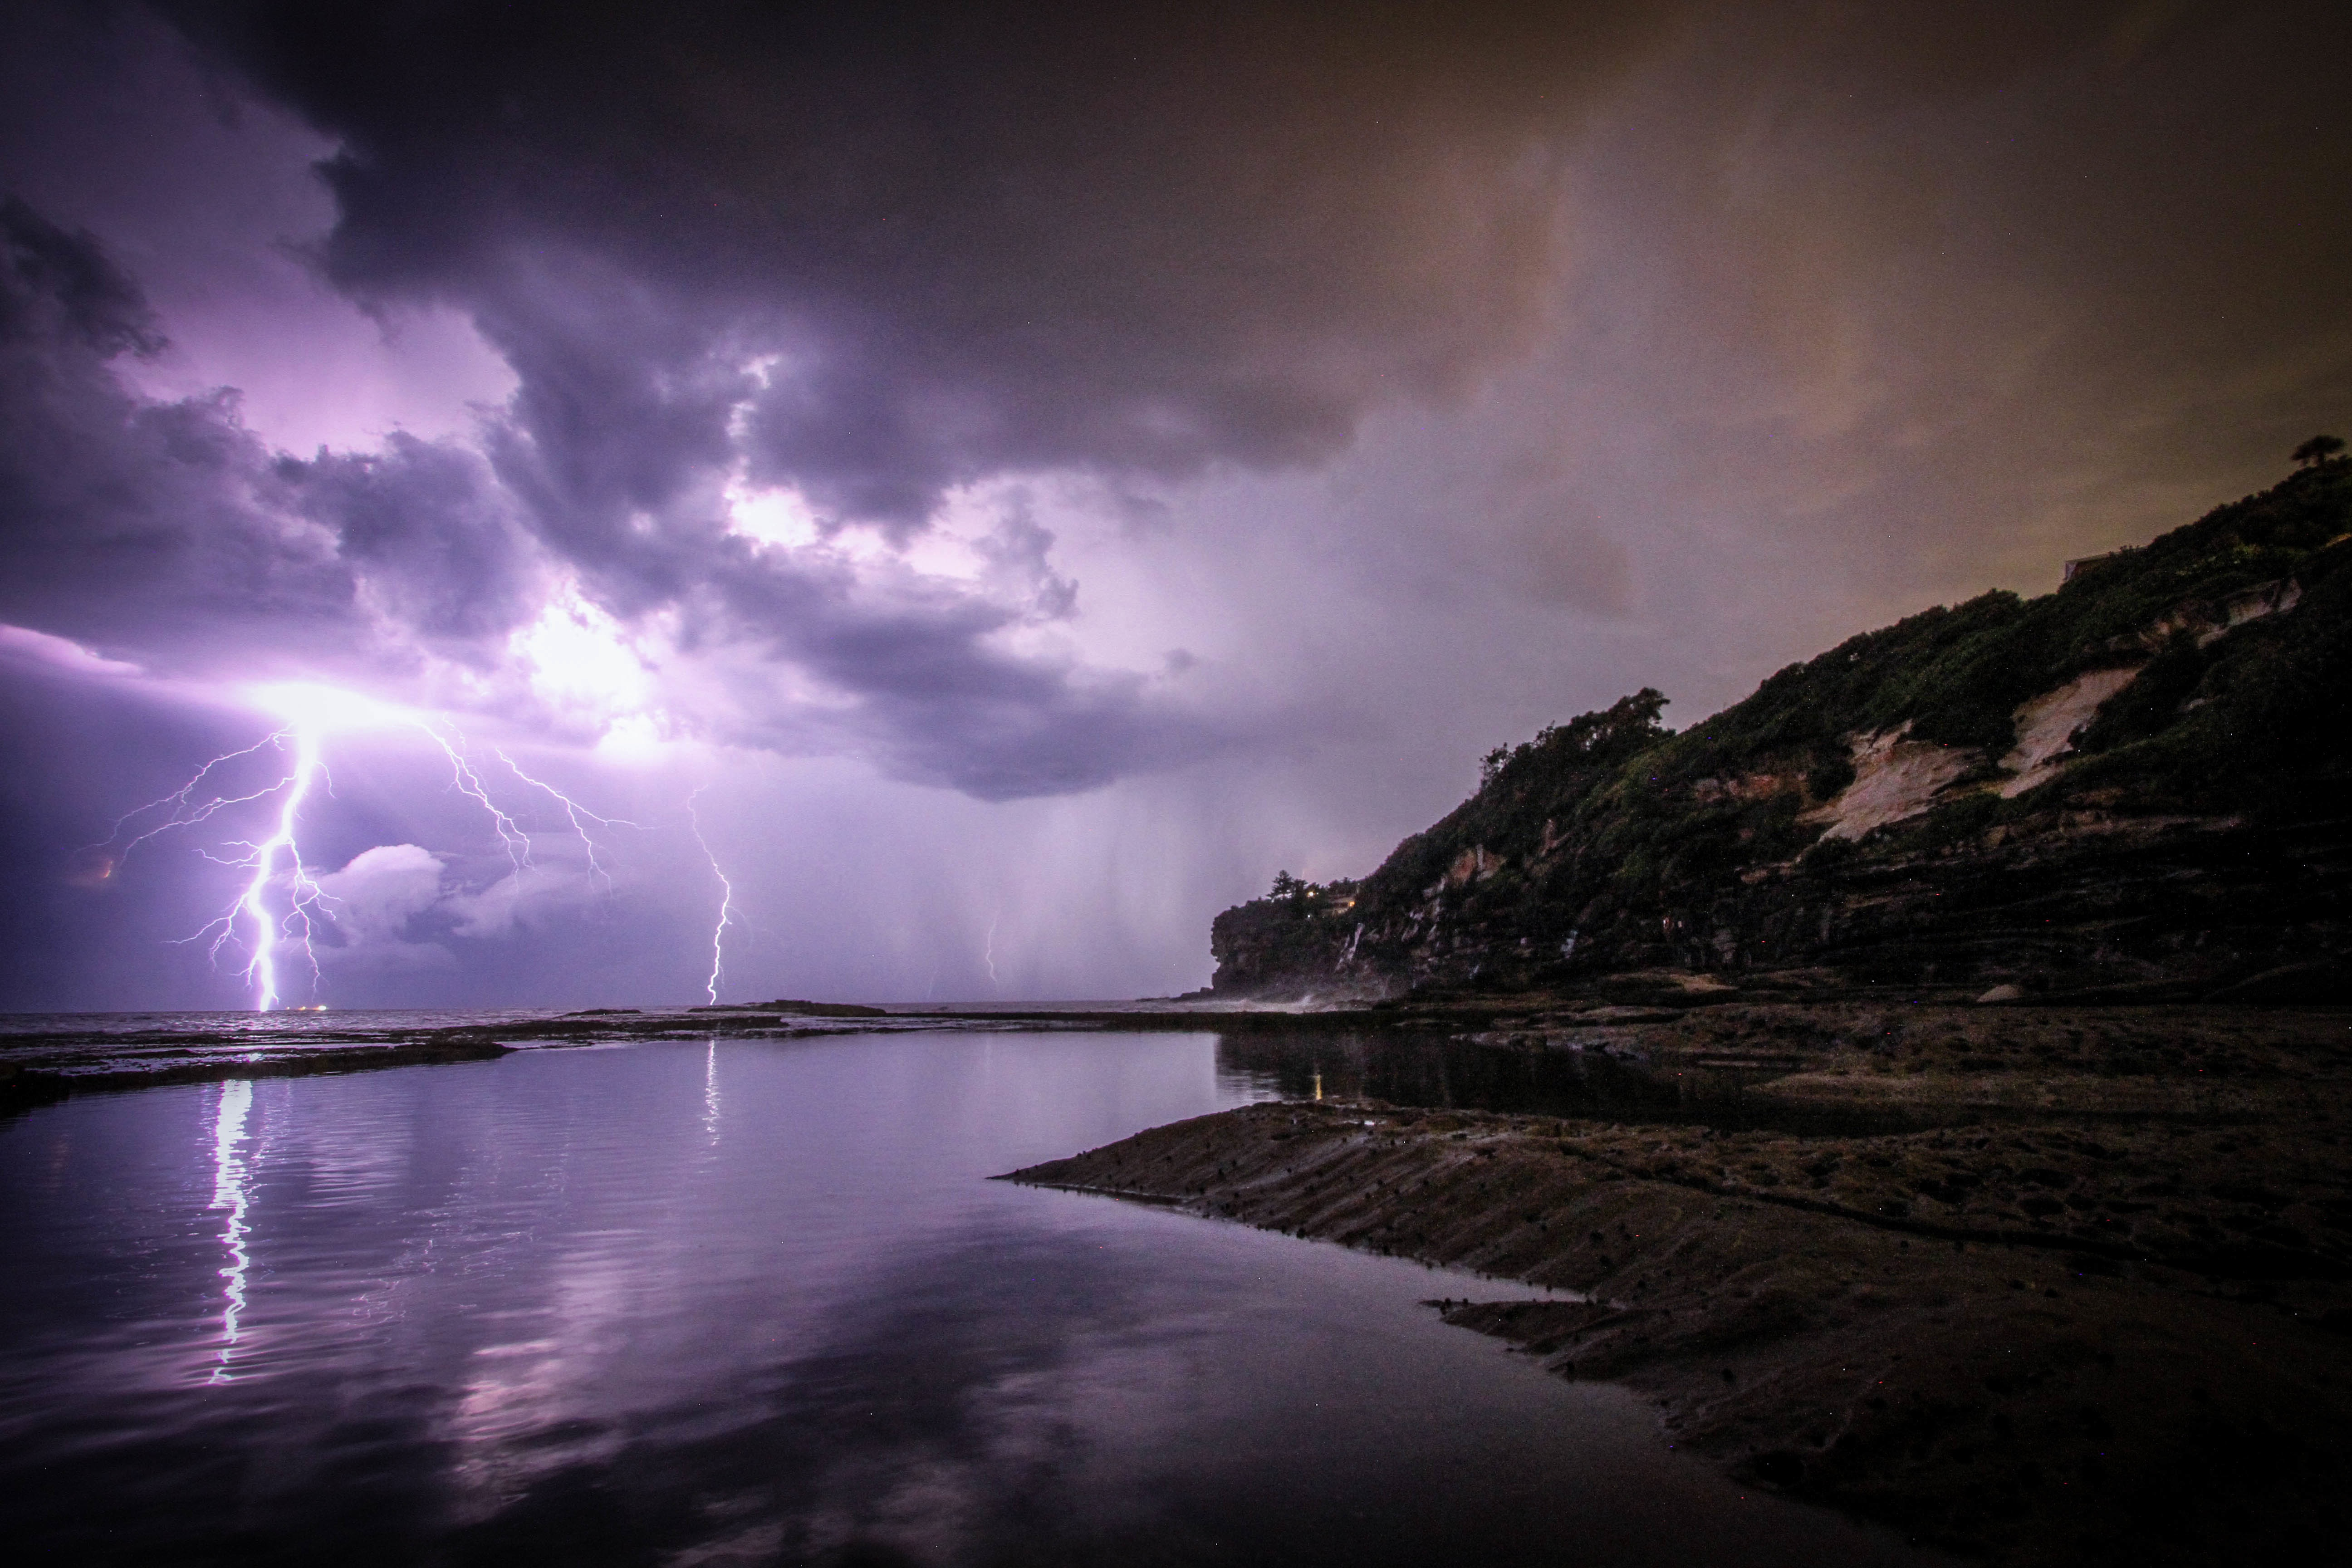 Storm in the evening photo